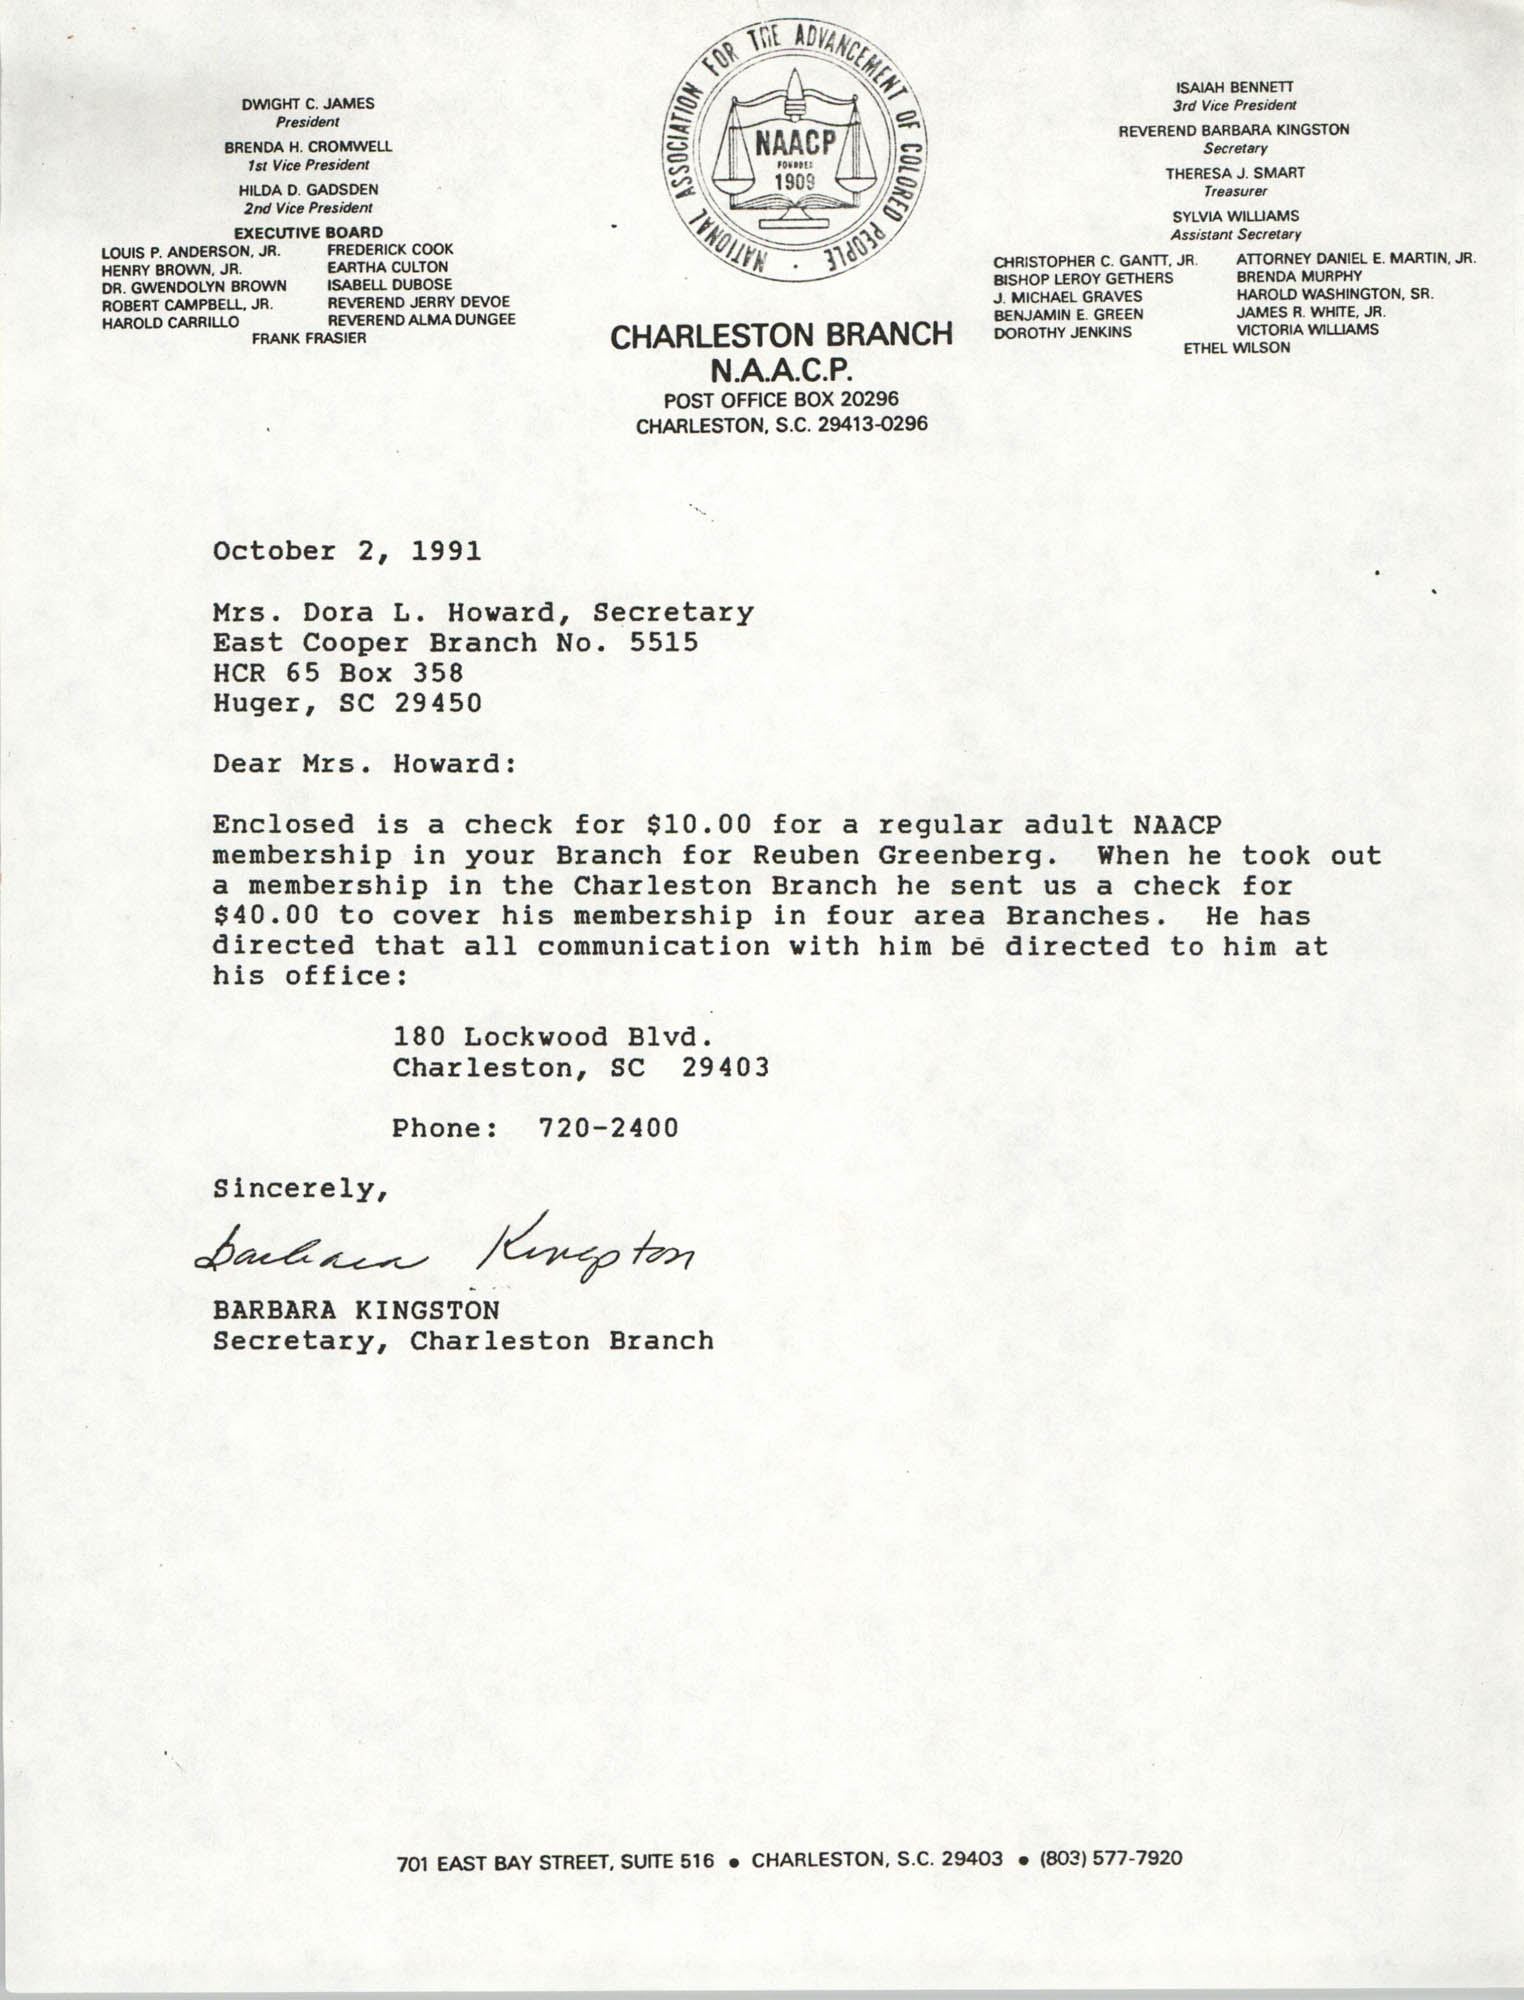 Letter from Barbara Kingston to Dora L. Howard, October 2, 1991